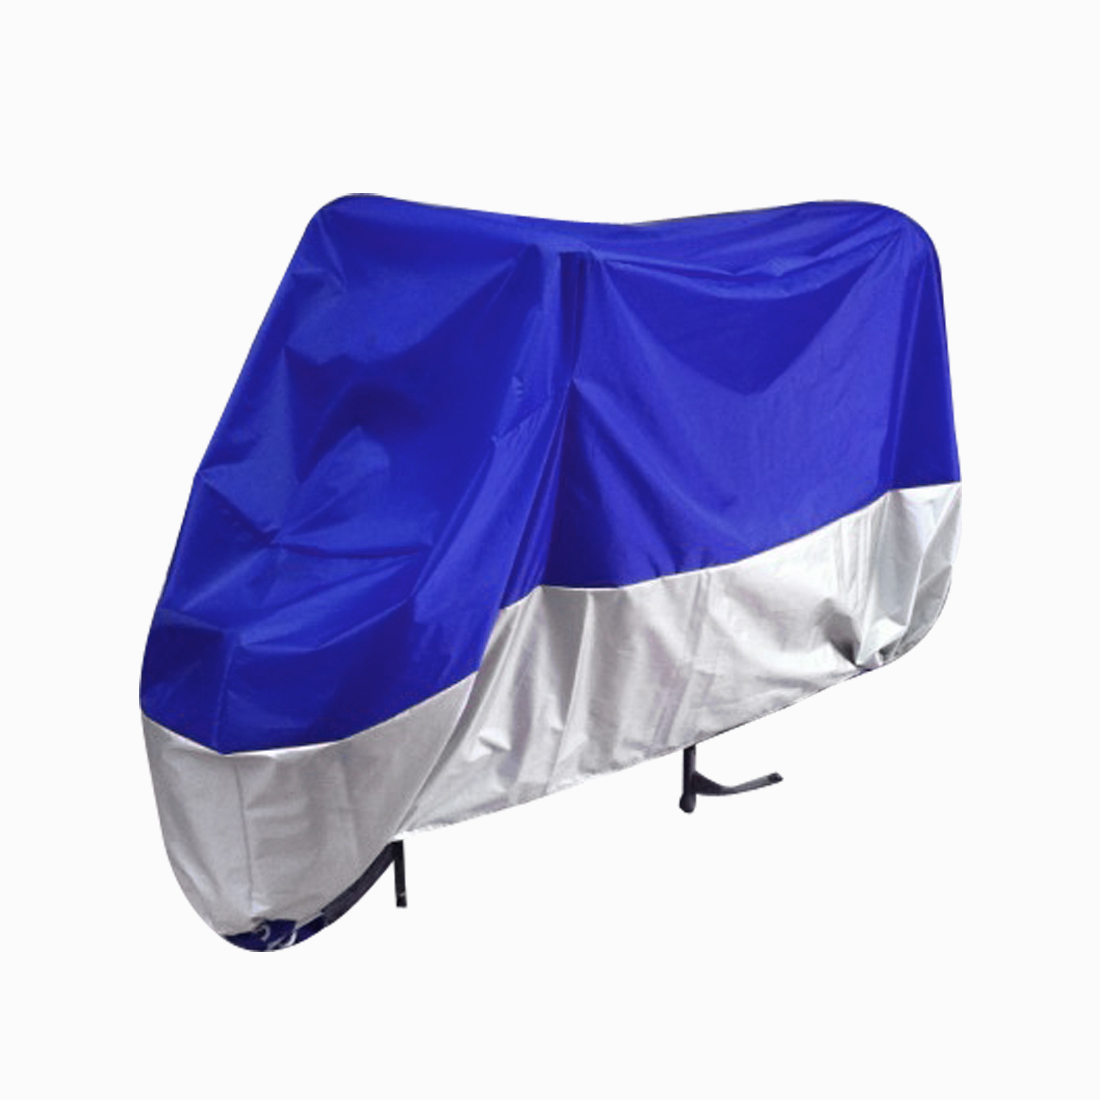 Motorcycle Waterproof Outdoor UV Protective Scooter Cover Silver Tone Blue